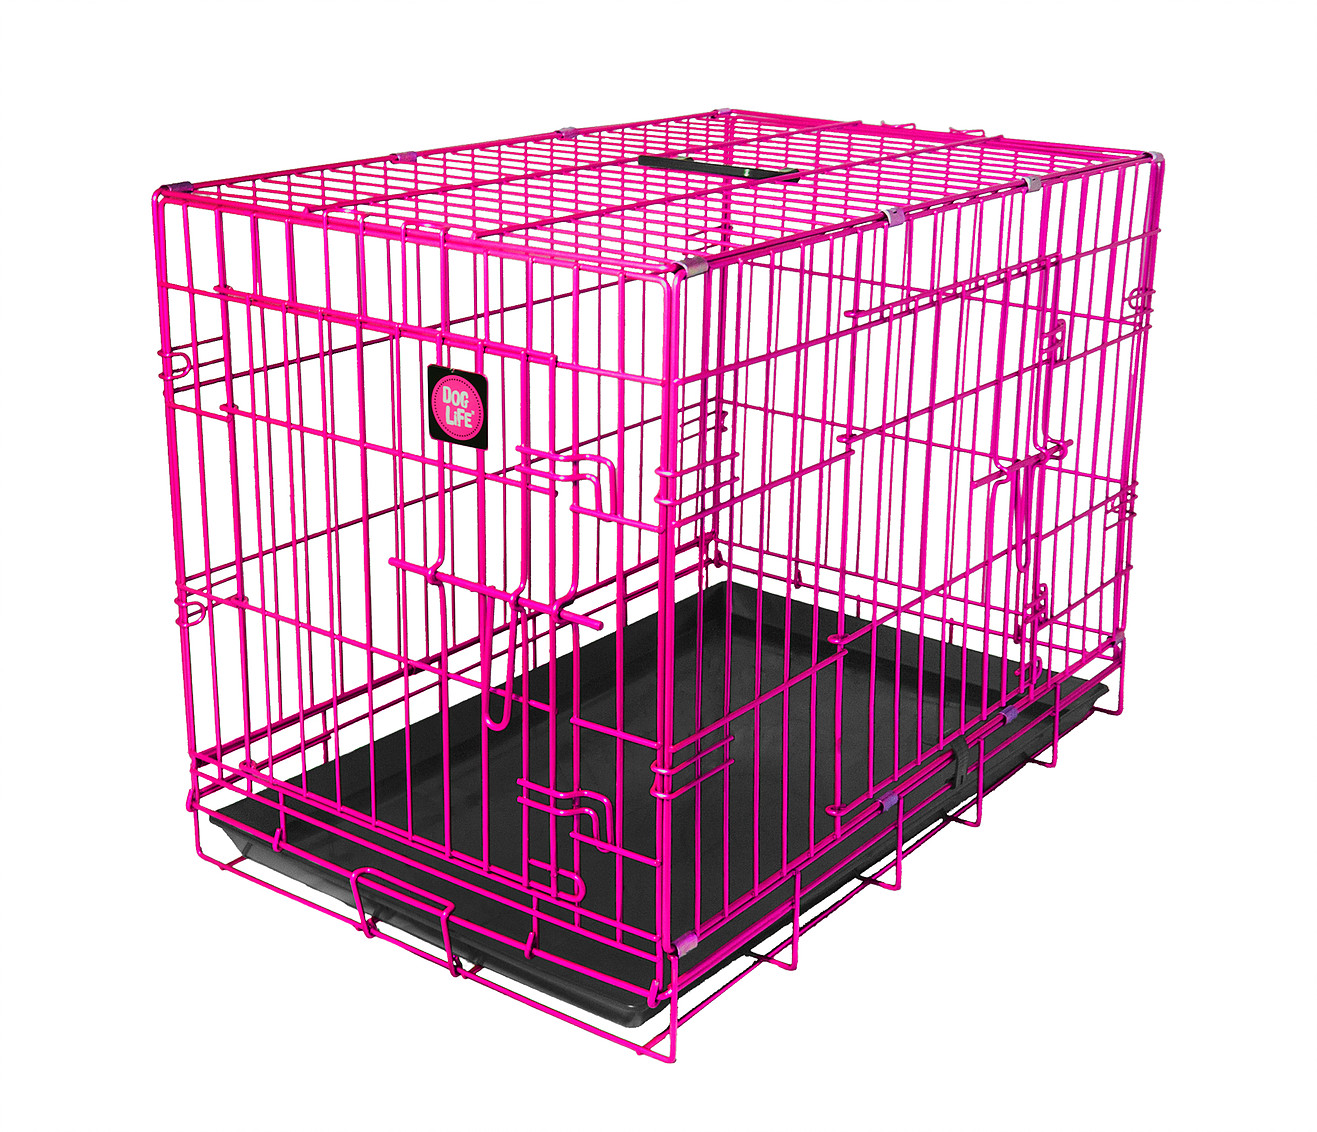 Pink Dog Crate Highquality, Durable, Colour Dog Crate Which Is Easy To